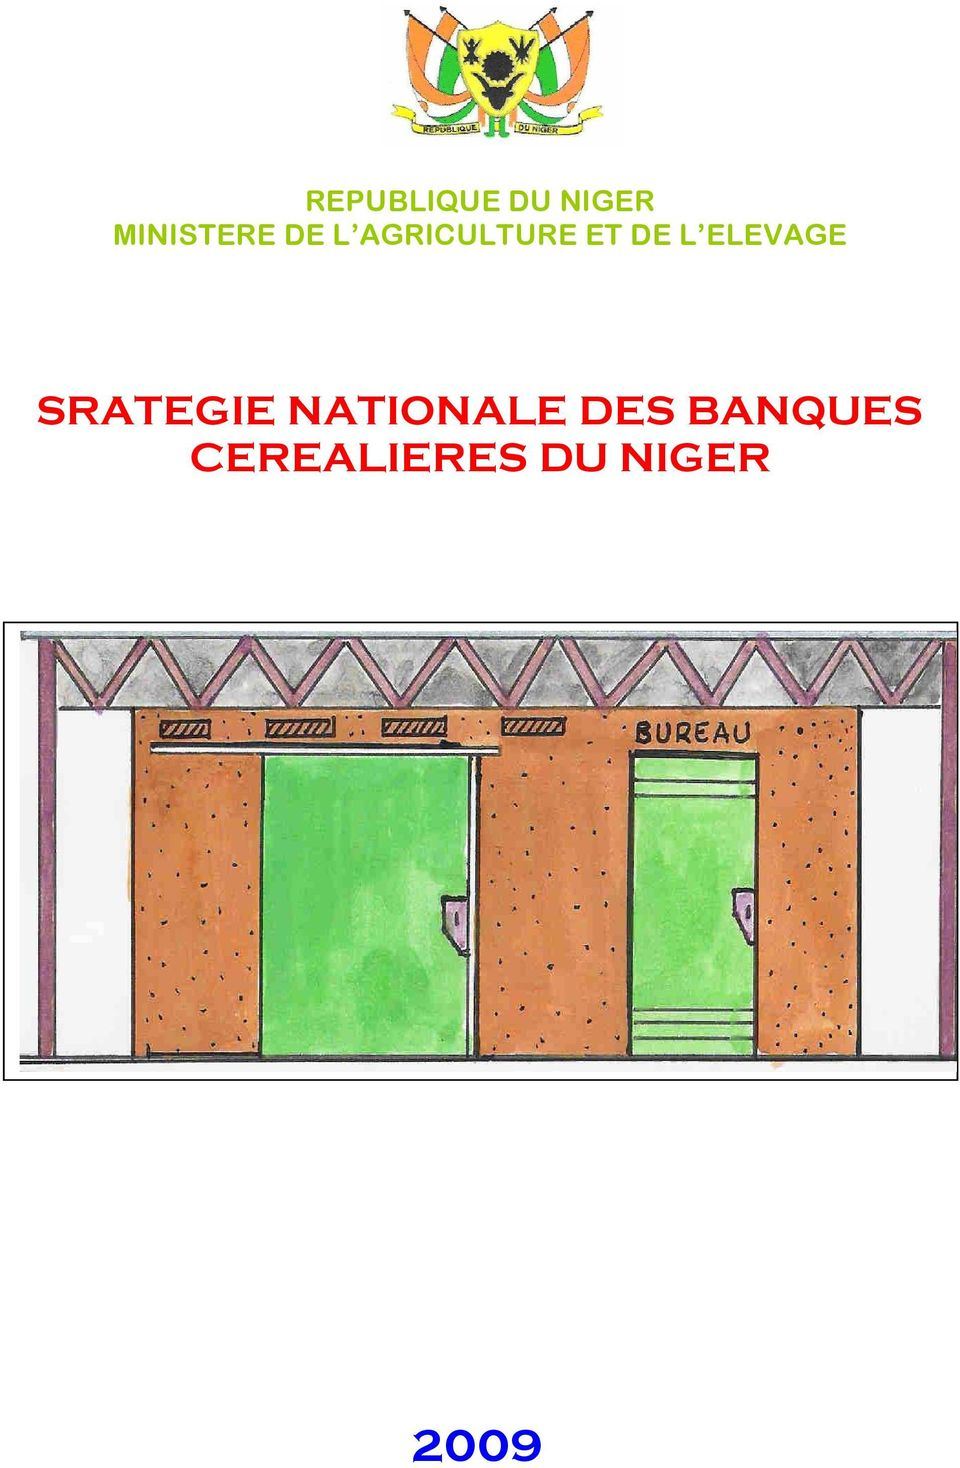 ELEVAGE SRATEGIE NATIONALE DES